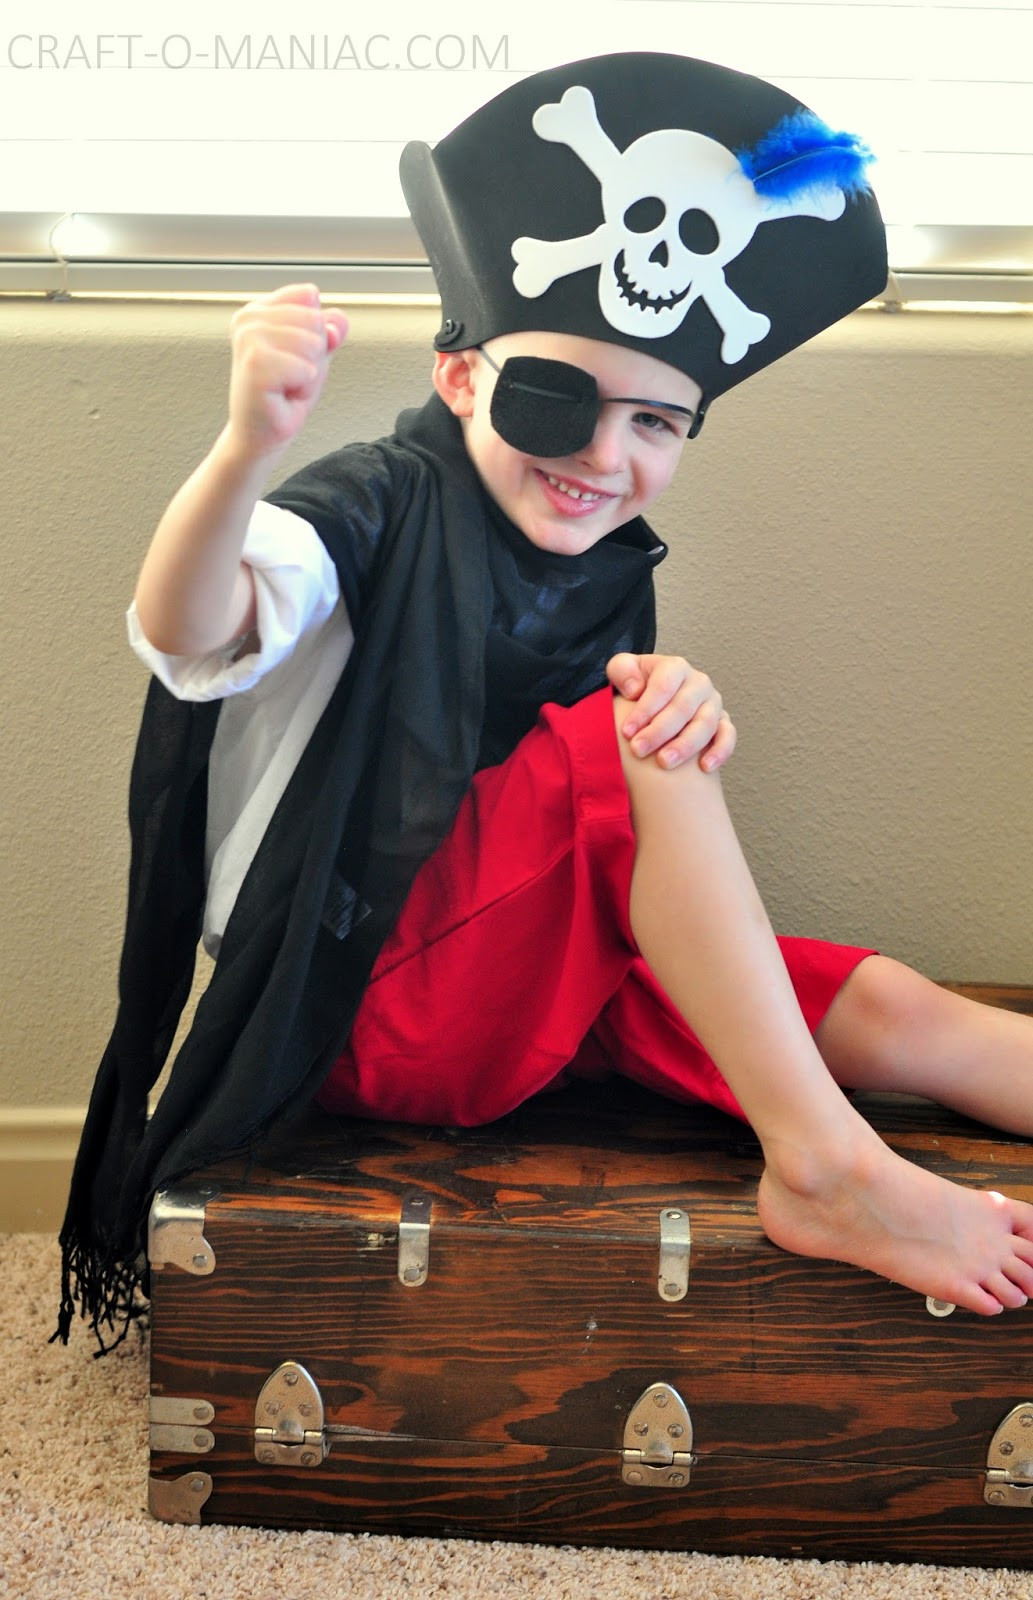 DIY Pirate Costumes For Kids  Kids Activity Dress Up Costumes Craft O Maniac